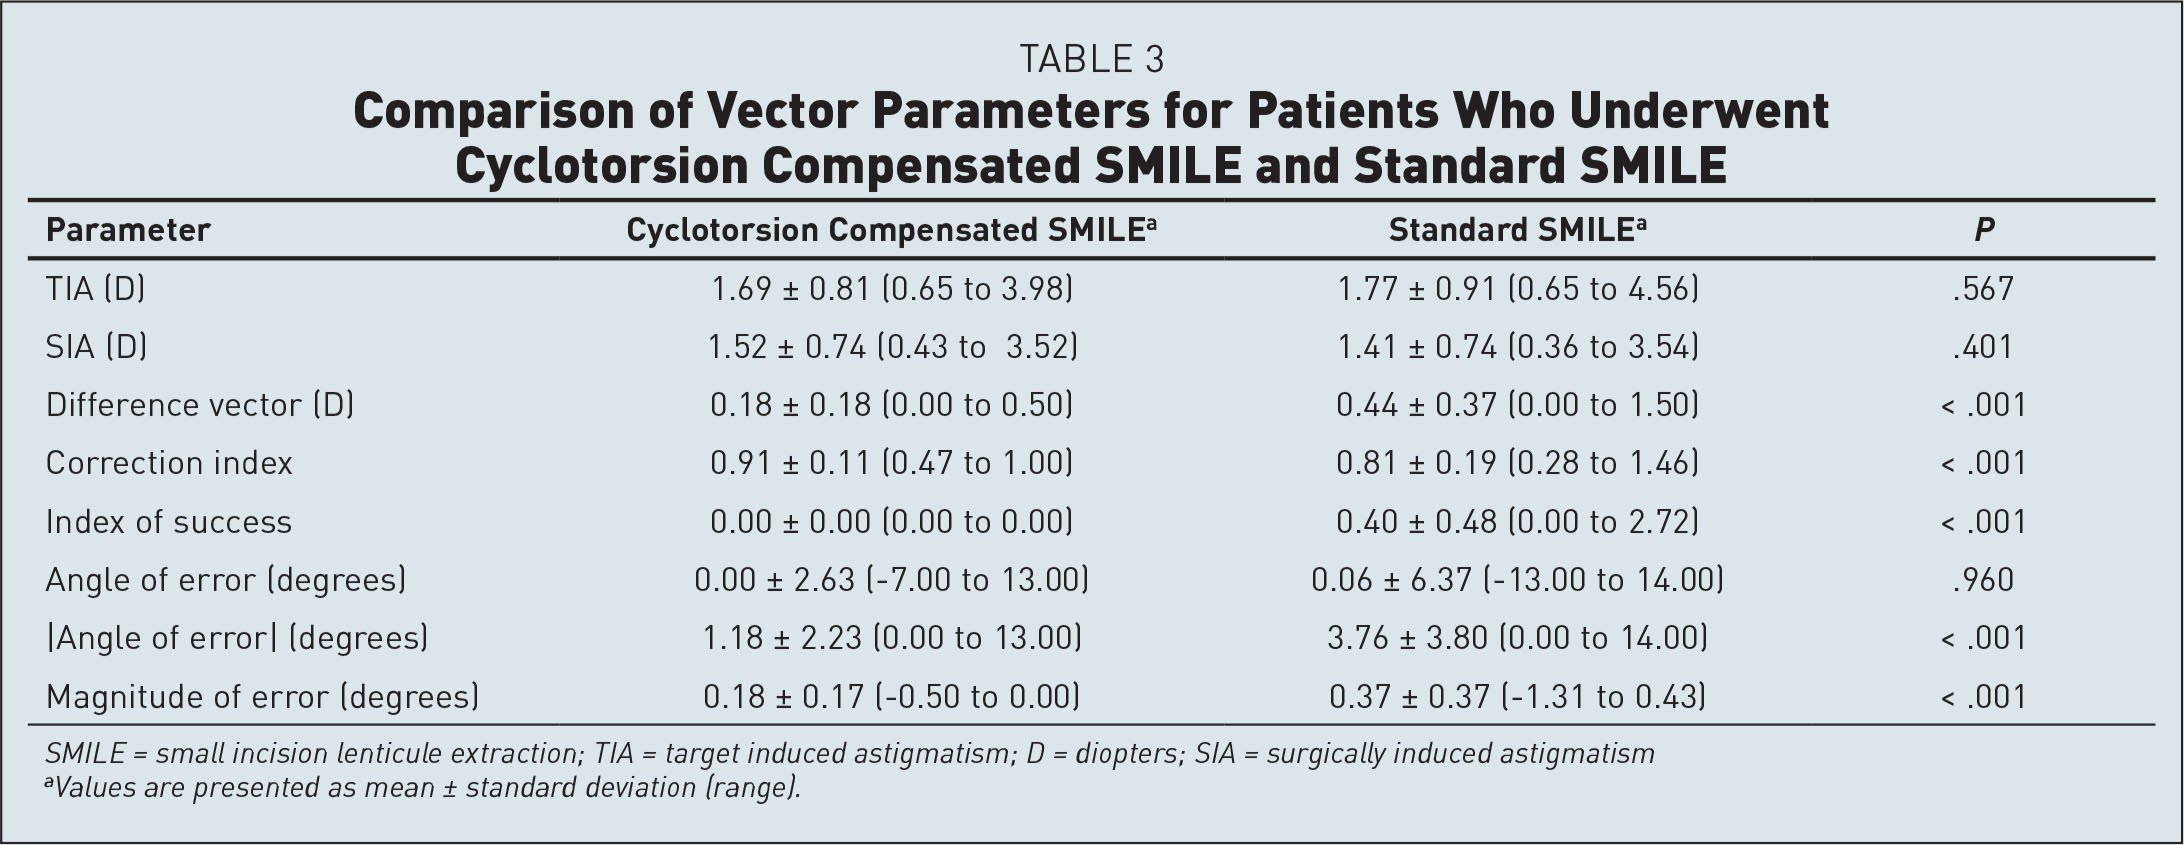 Comparison of Vector Parameters for Patients Who Underwent Cyclotorsion Compensated SMILE and Standard SMILE